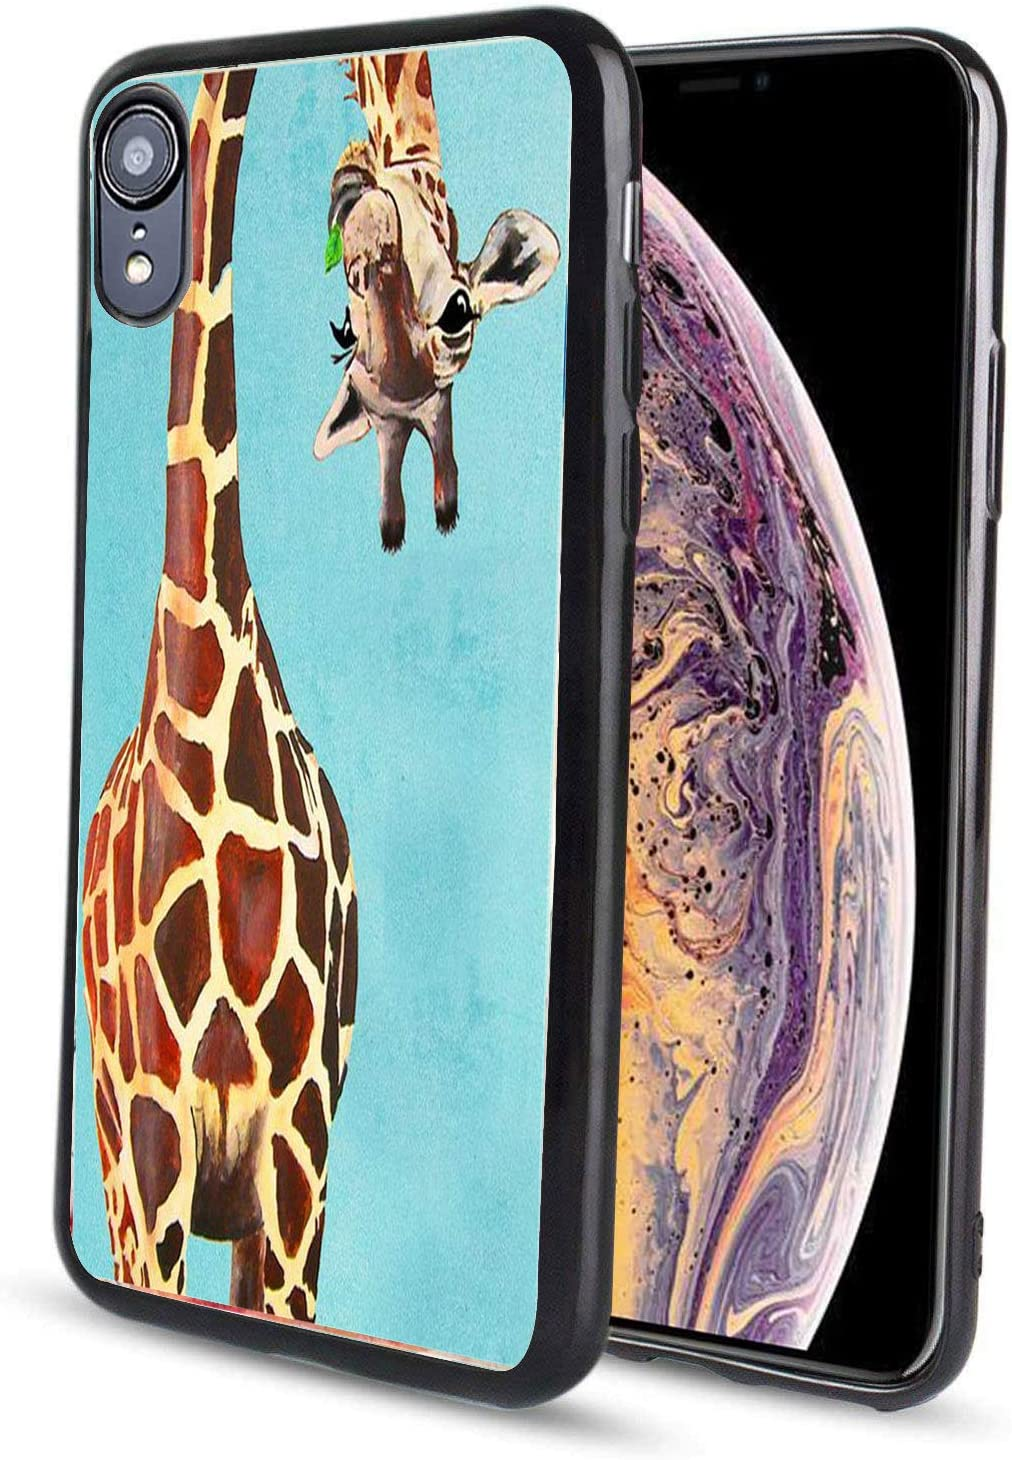 pzicase iPhone XR 6.1 inch Case, Design TPU Soft Silicone Protective Durable Shockproof Case for iPhone XR-Giraffe